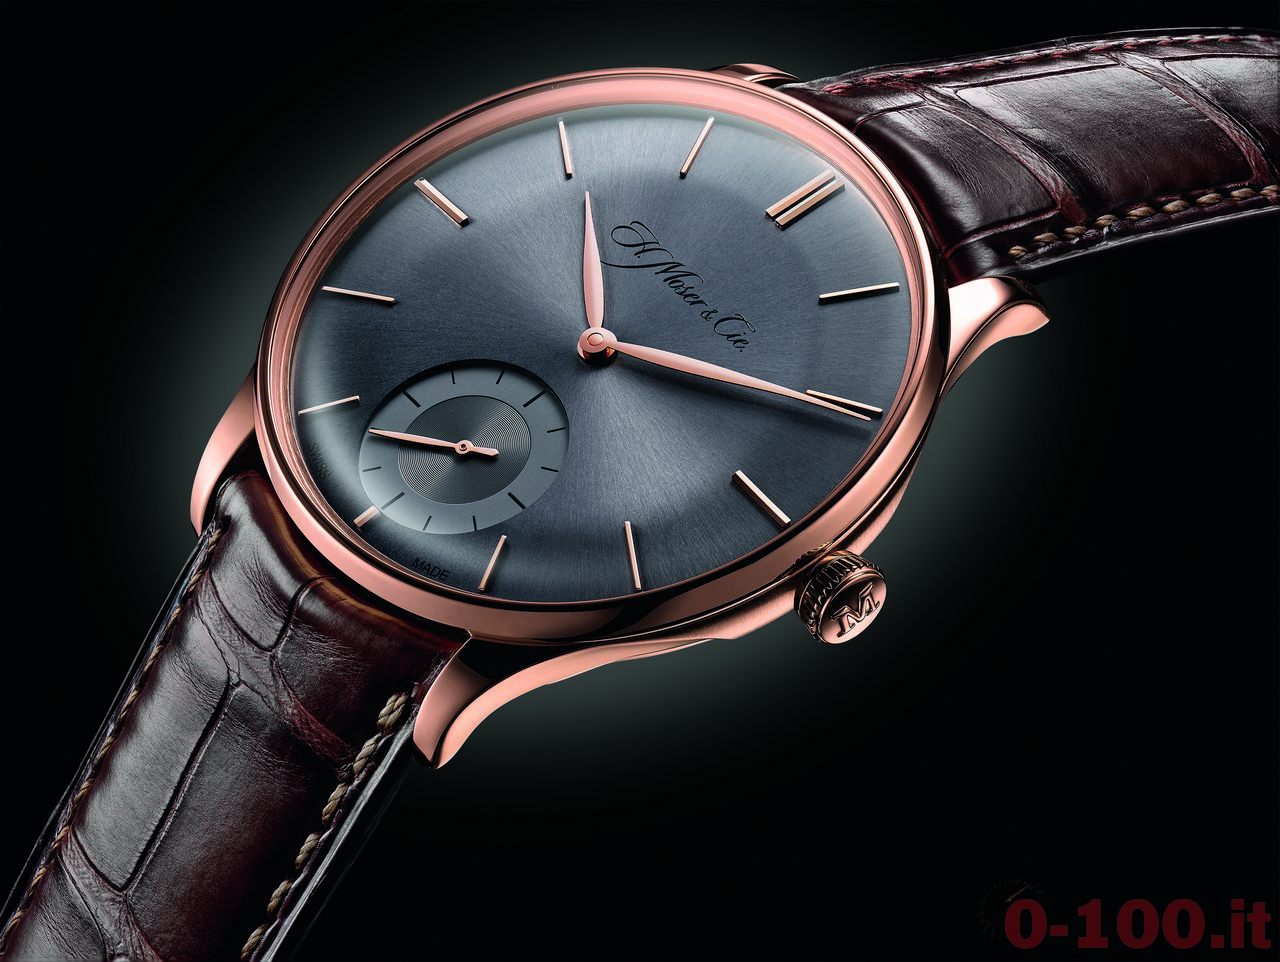 Baselworld-2014-H. Moser & Cie Venturer Small Seconds _0-1009